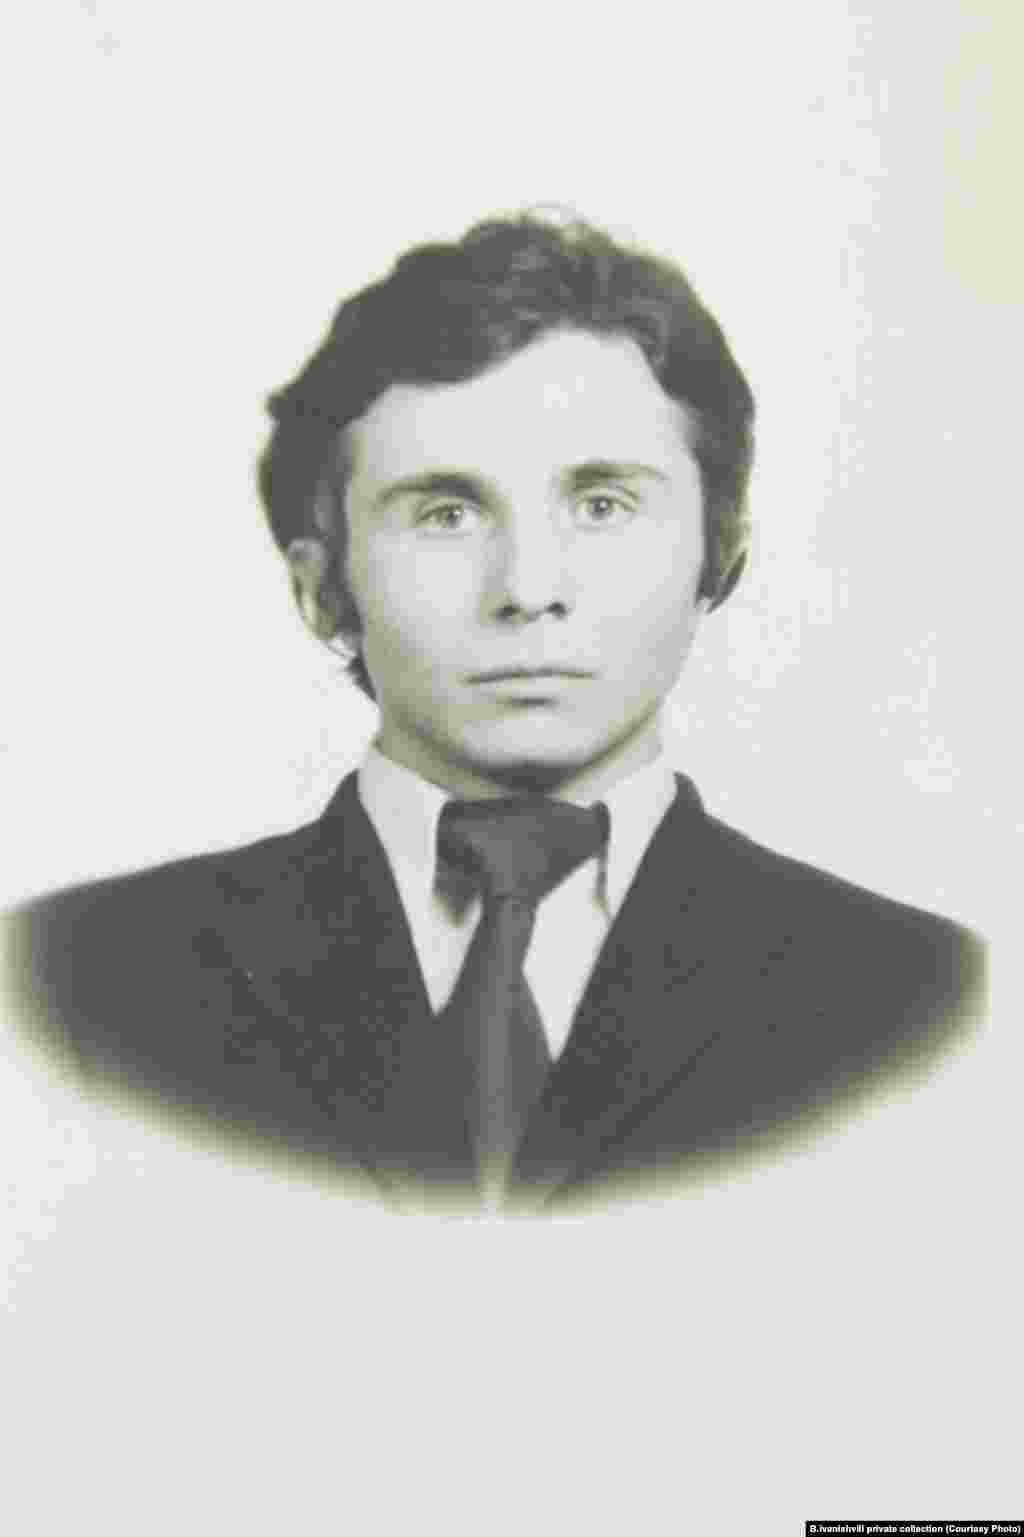 Ivanishvili, seen here in an undated photo, graduated from high school in Sachkhere.